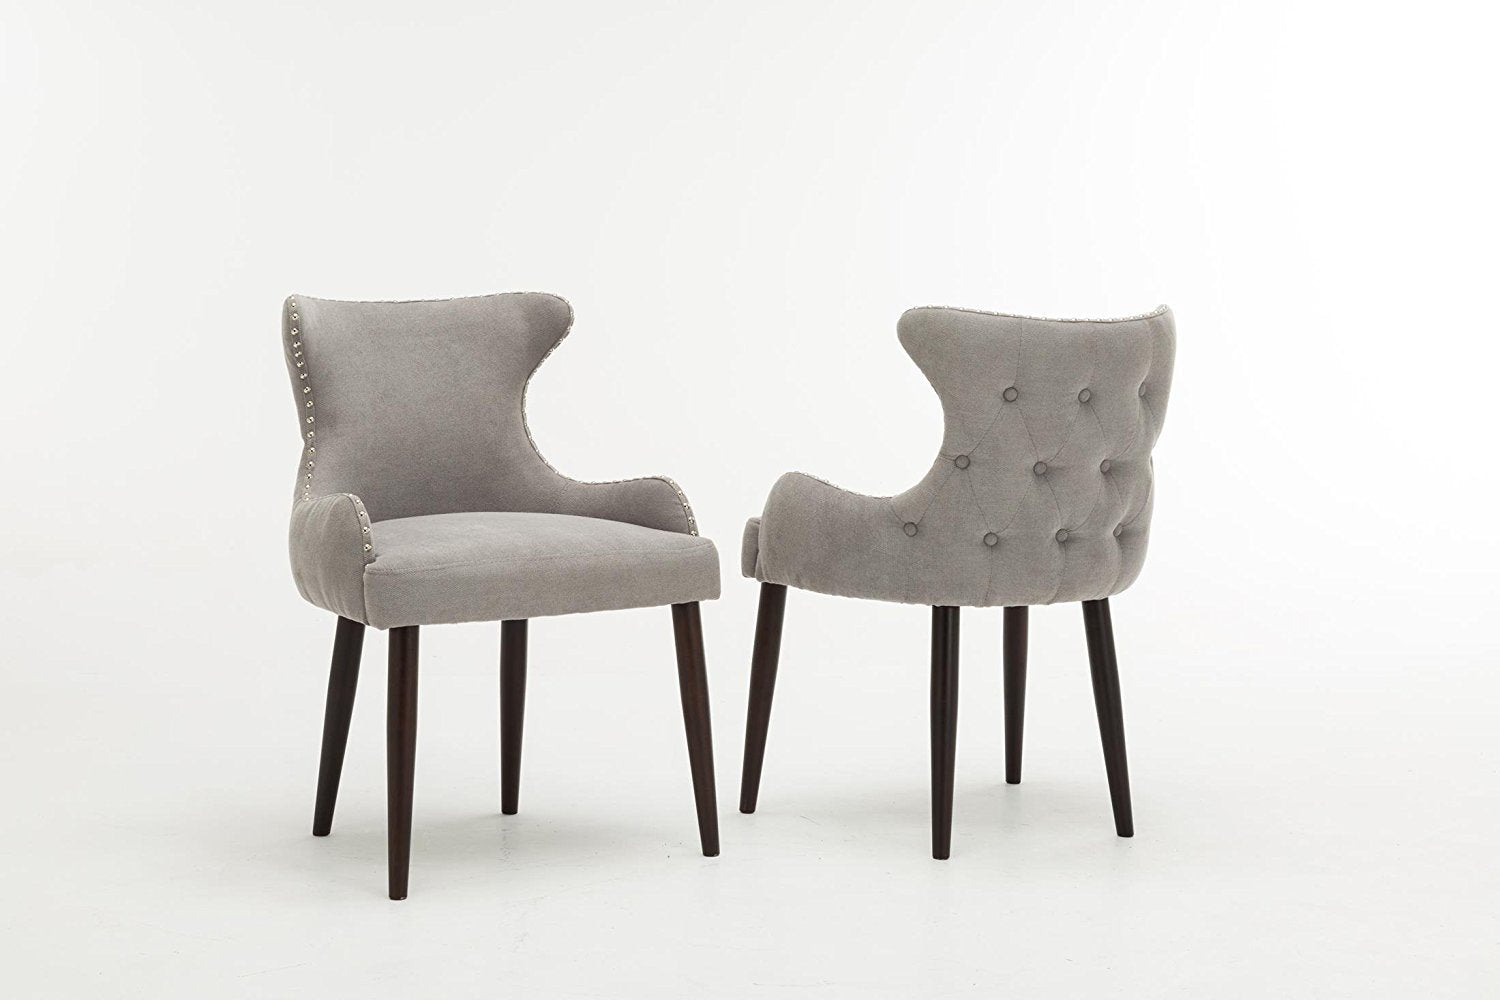 Oliver Smith® Grey Tufted And Nailed Contemporary Microfiber Chairs